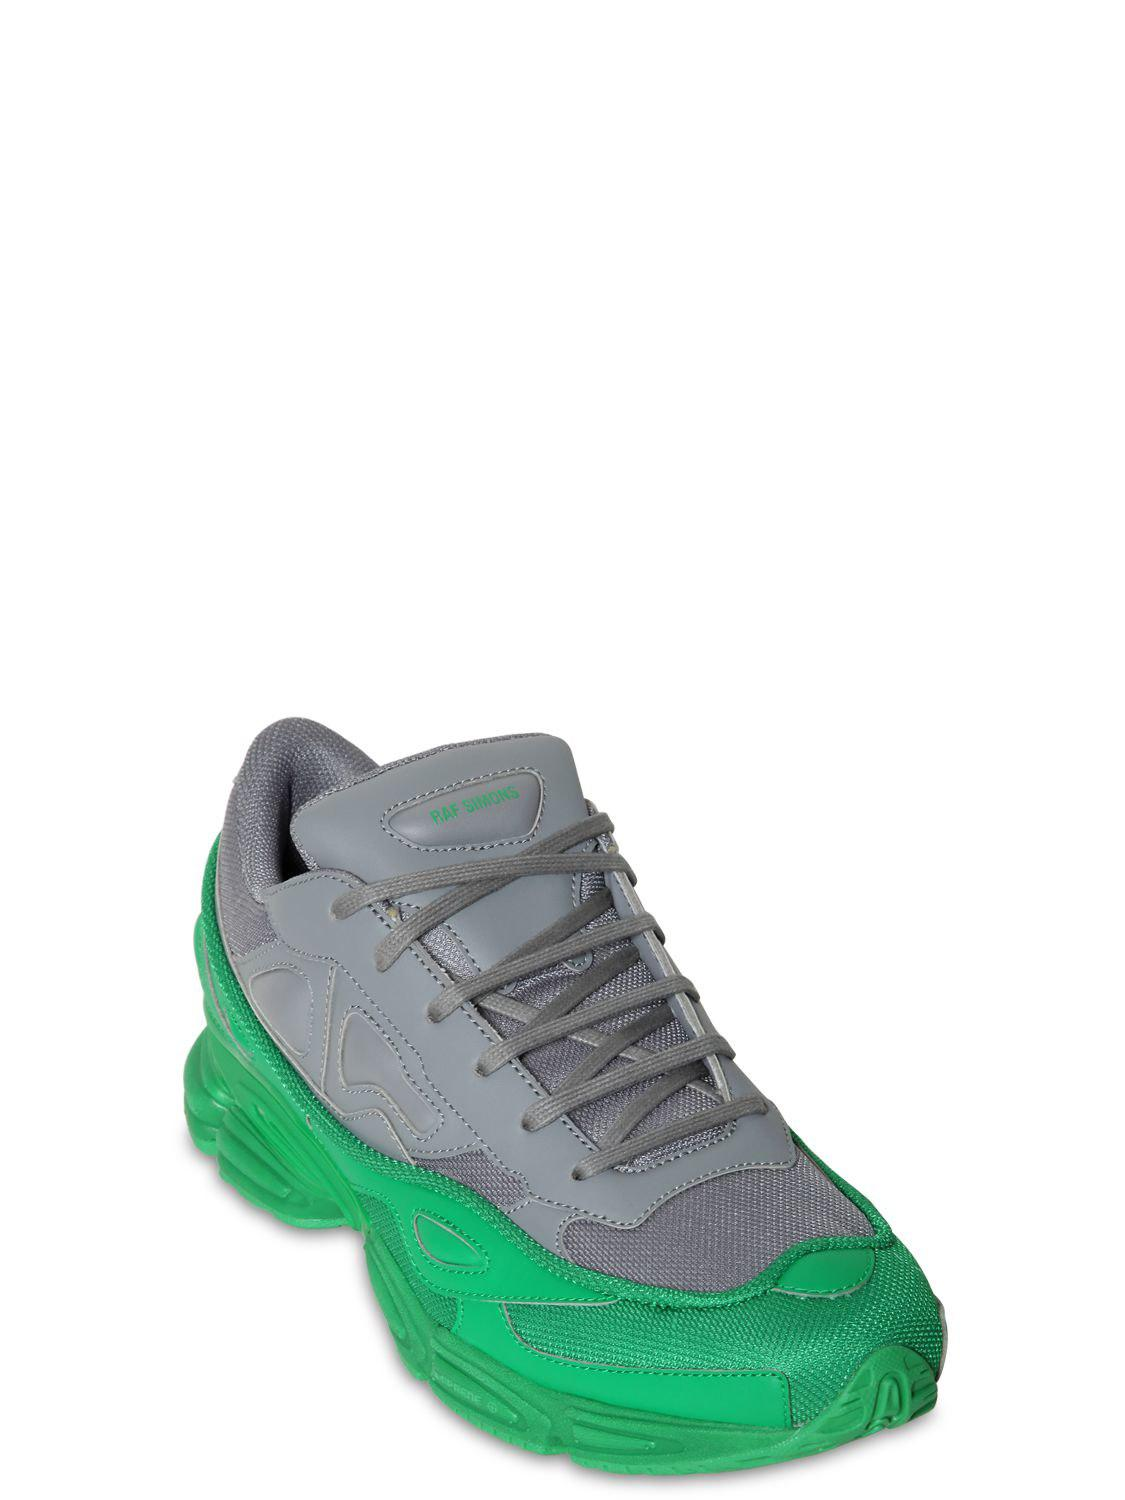 91fa1688d6e09d Lyst - adidas By Raf Simons Rs Ozweego Iii Two Tone Sneakers in Gray ...